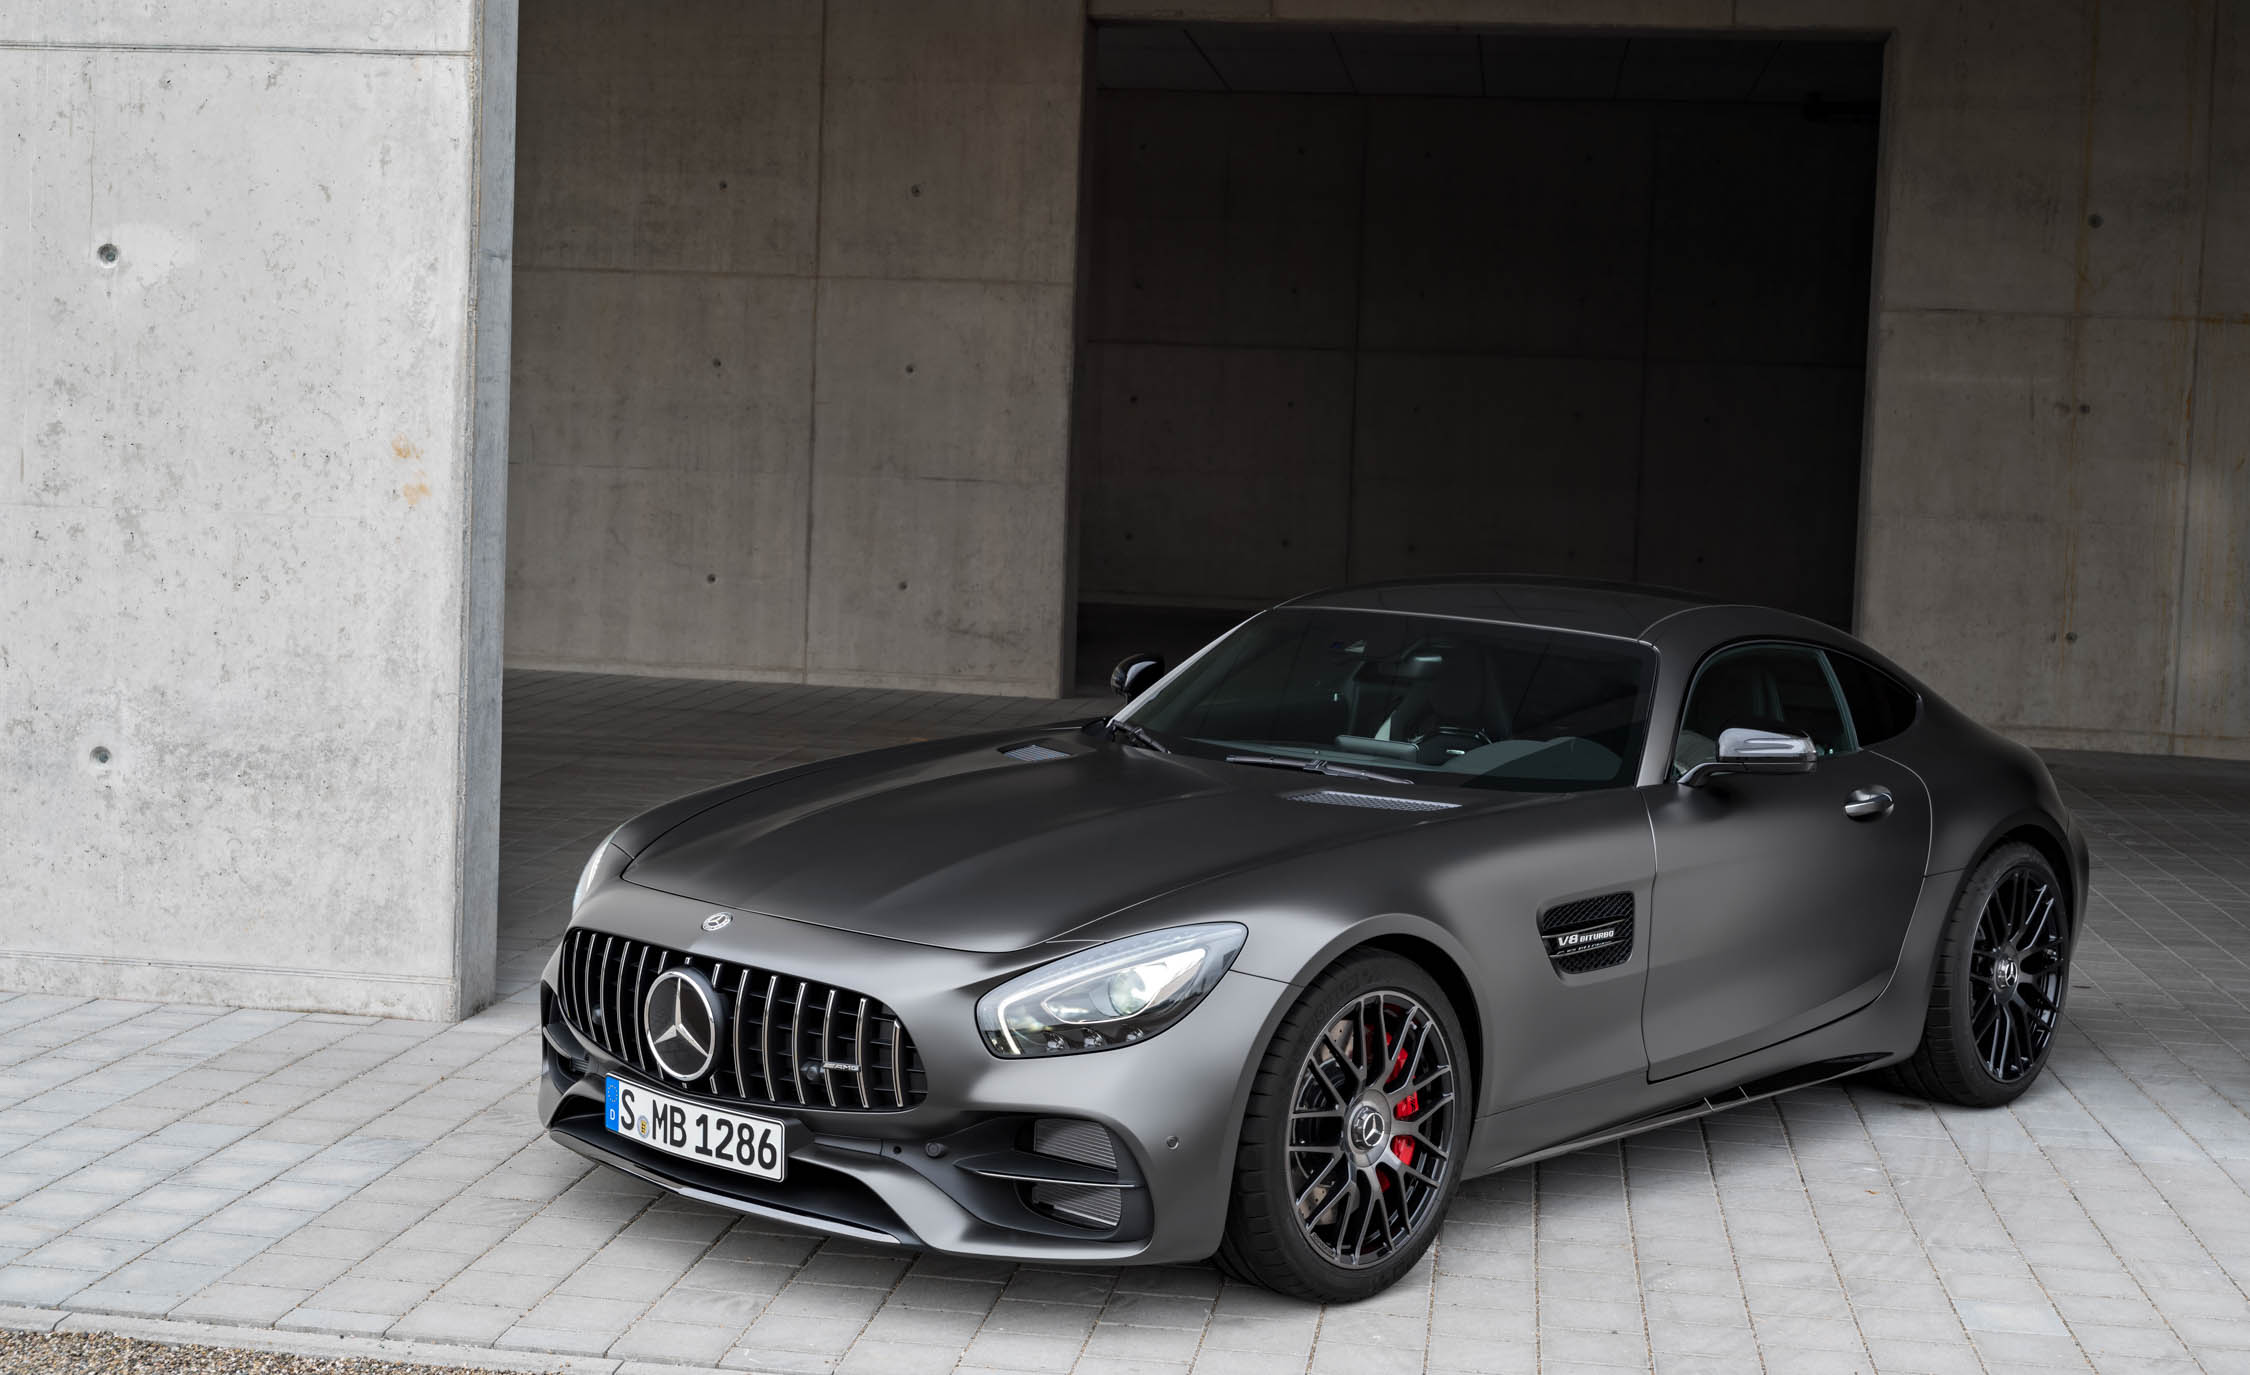 2018 Mercedes Amg Gt C Exterior Front And Side (Photo 5 of 23)